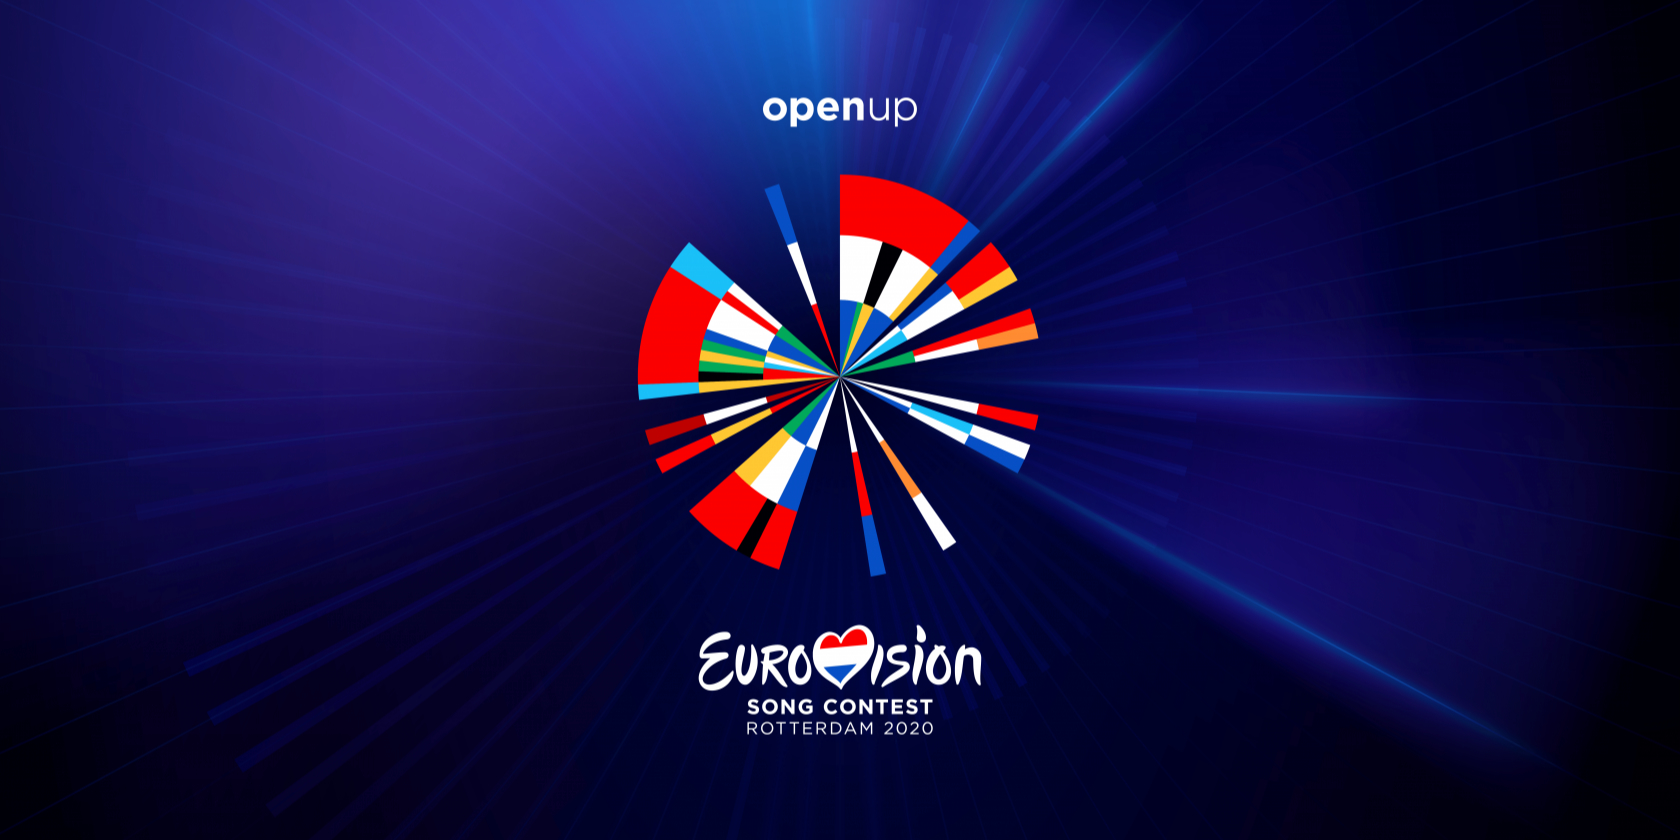 Eurovision 2020 - Participants, songs and videos ...